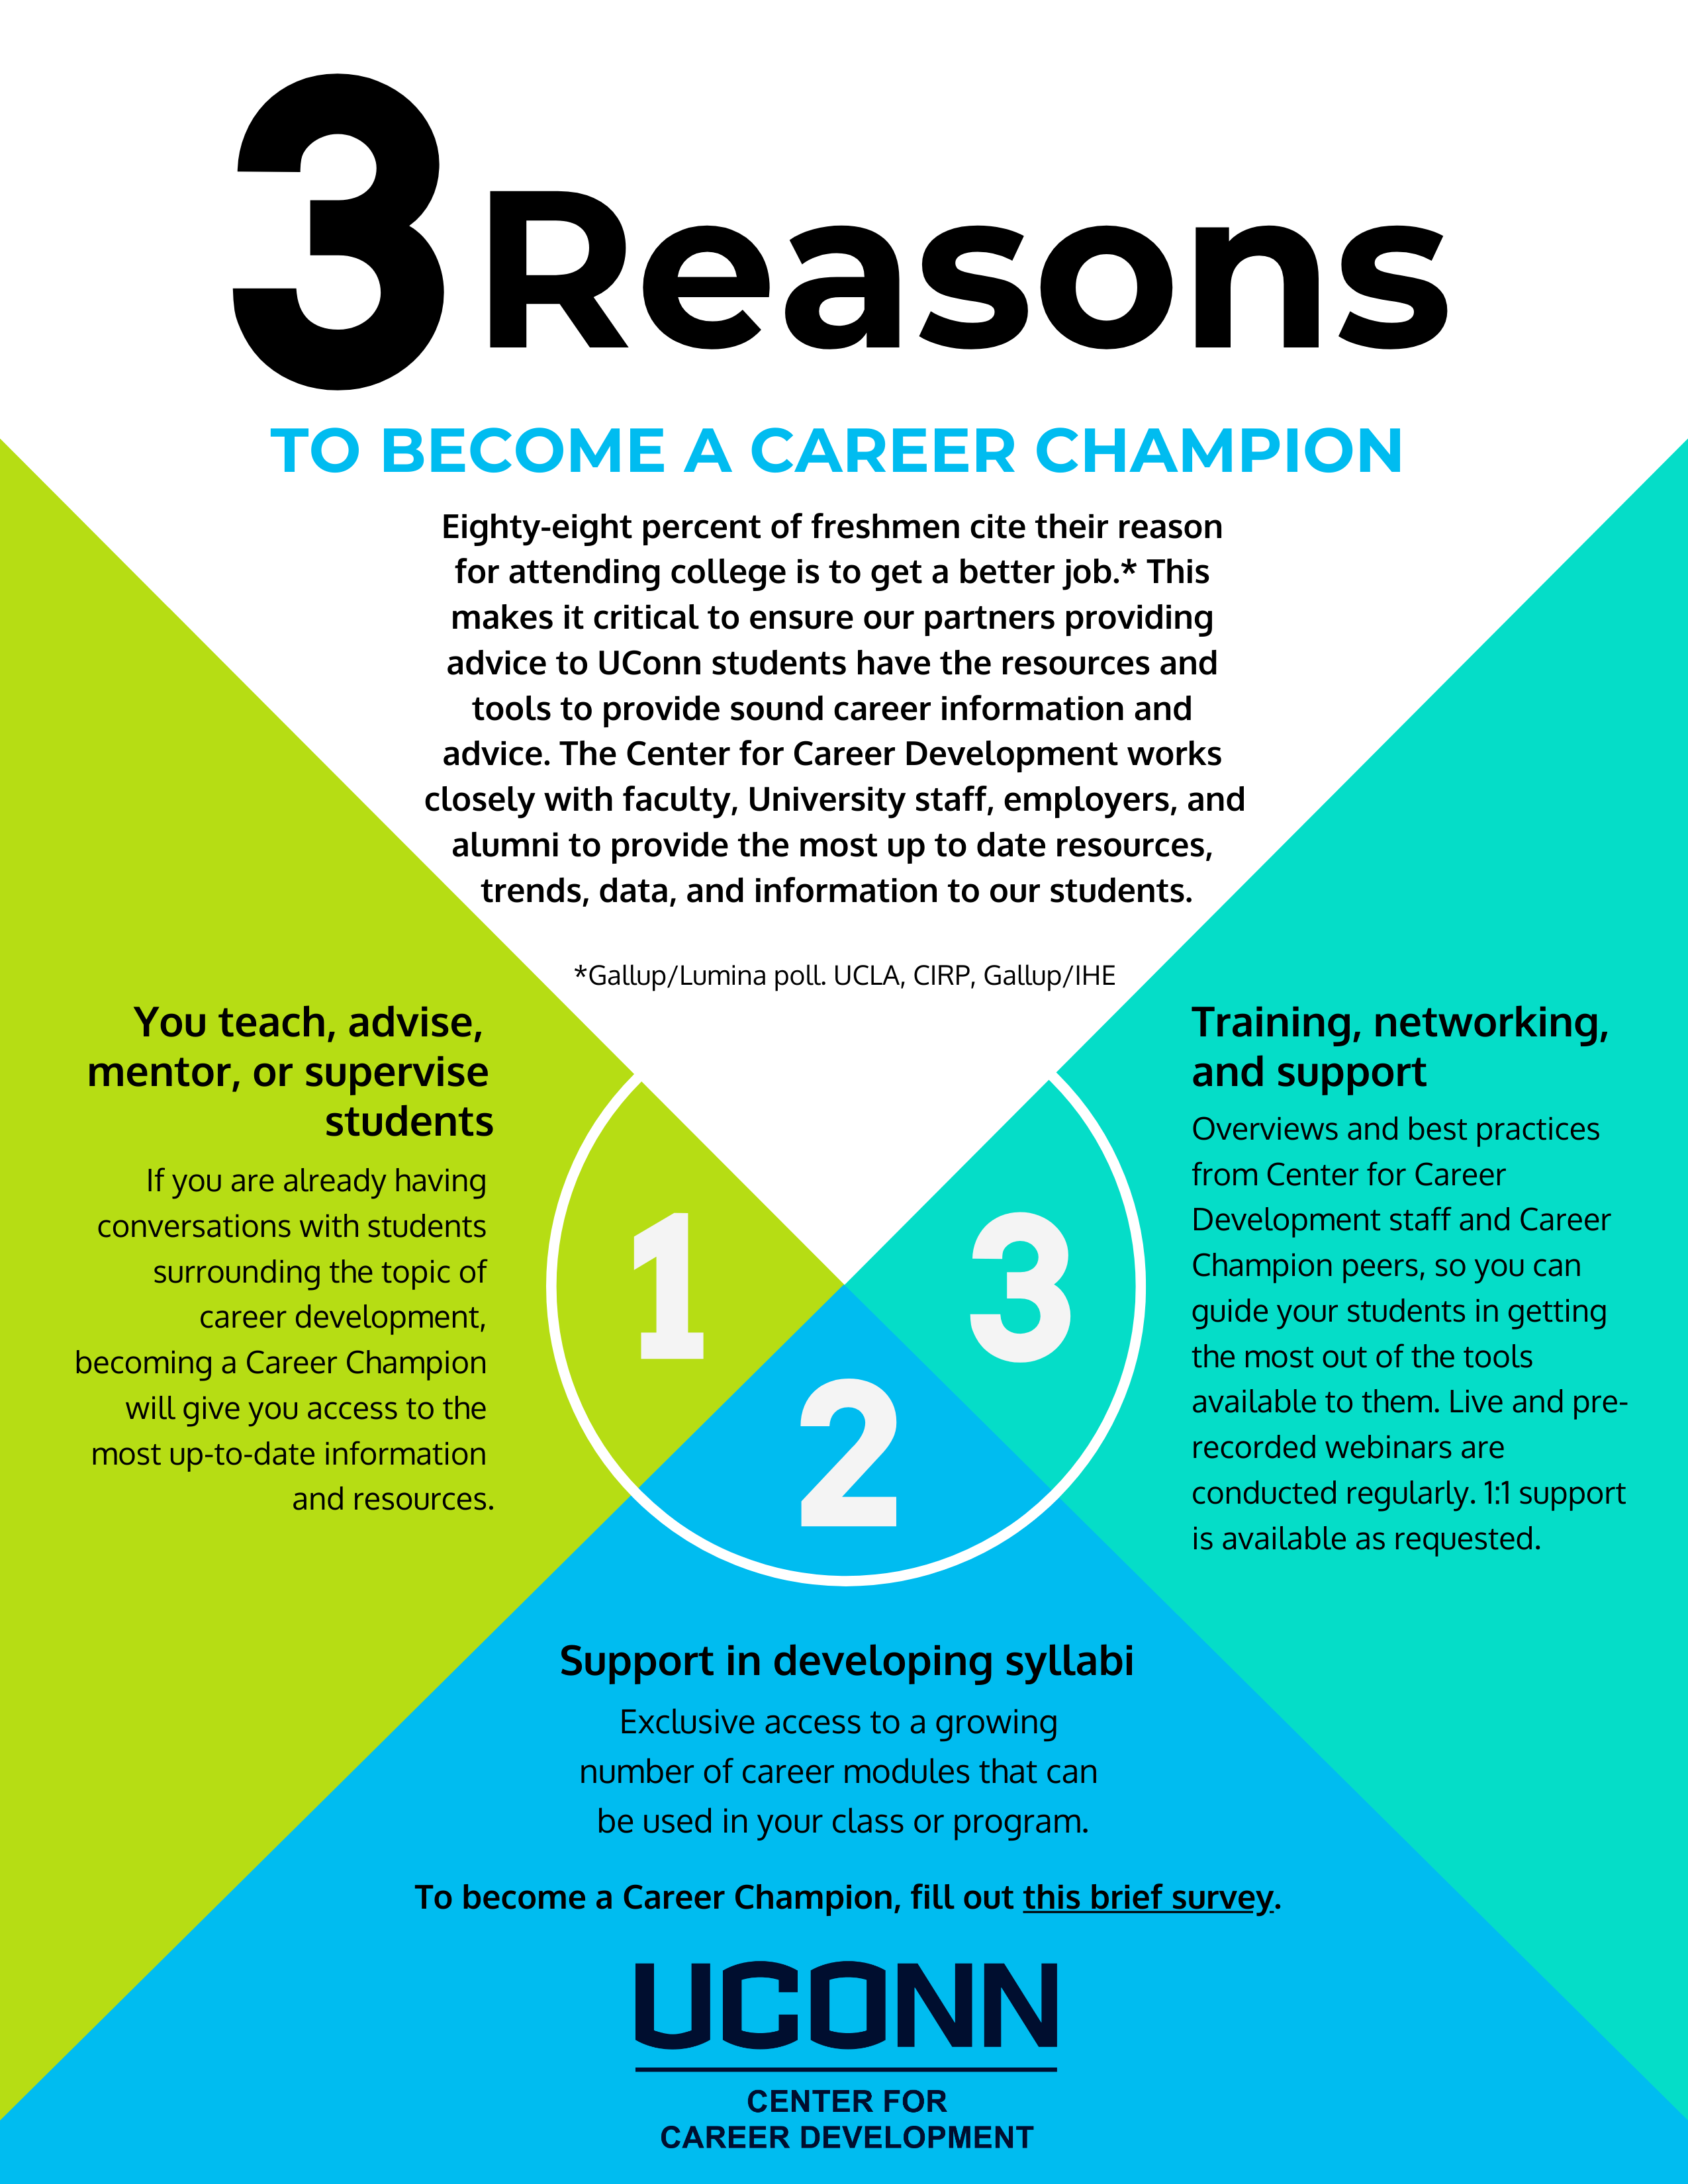 3 Reasons to Become a Career Champion